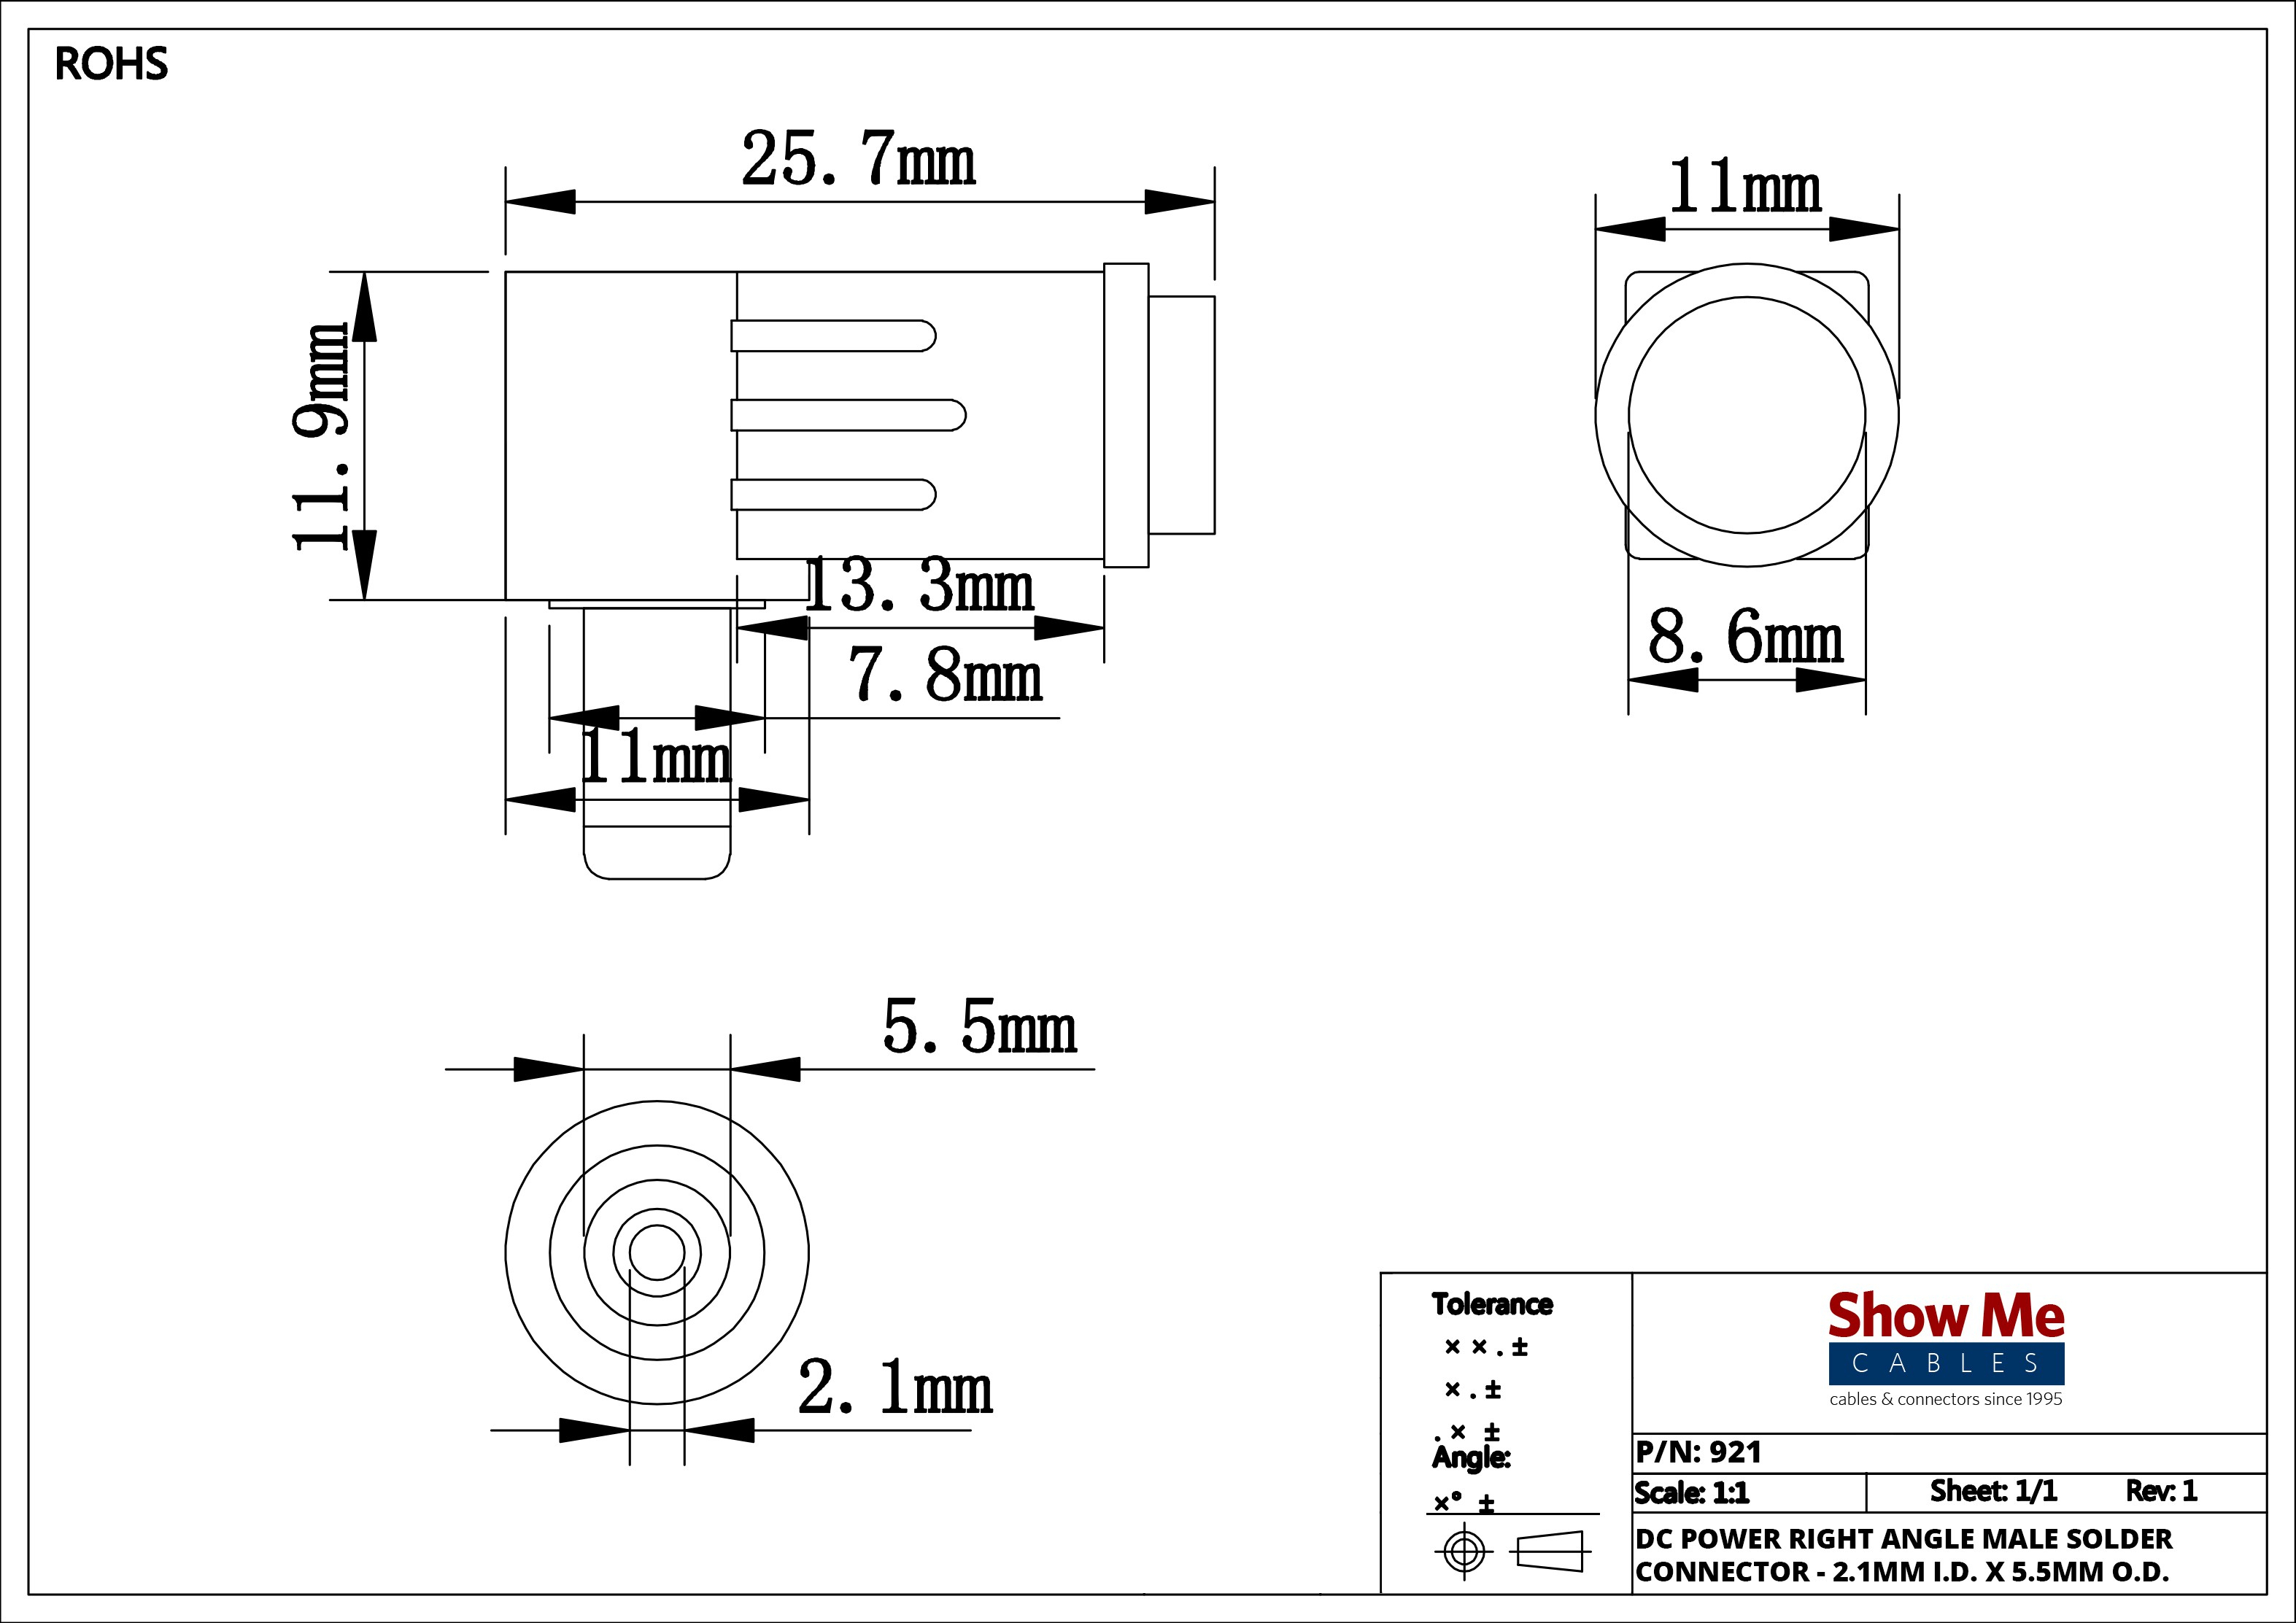 turtle beach wiring diagram Download-home speaker wiring diagram Collection 3 5 Mm Stereo Jack Wiring Diagram Elegant 2 5mm DOWNLOAD Wiring Diagram 5-d